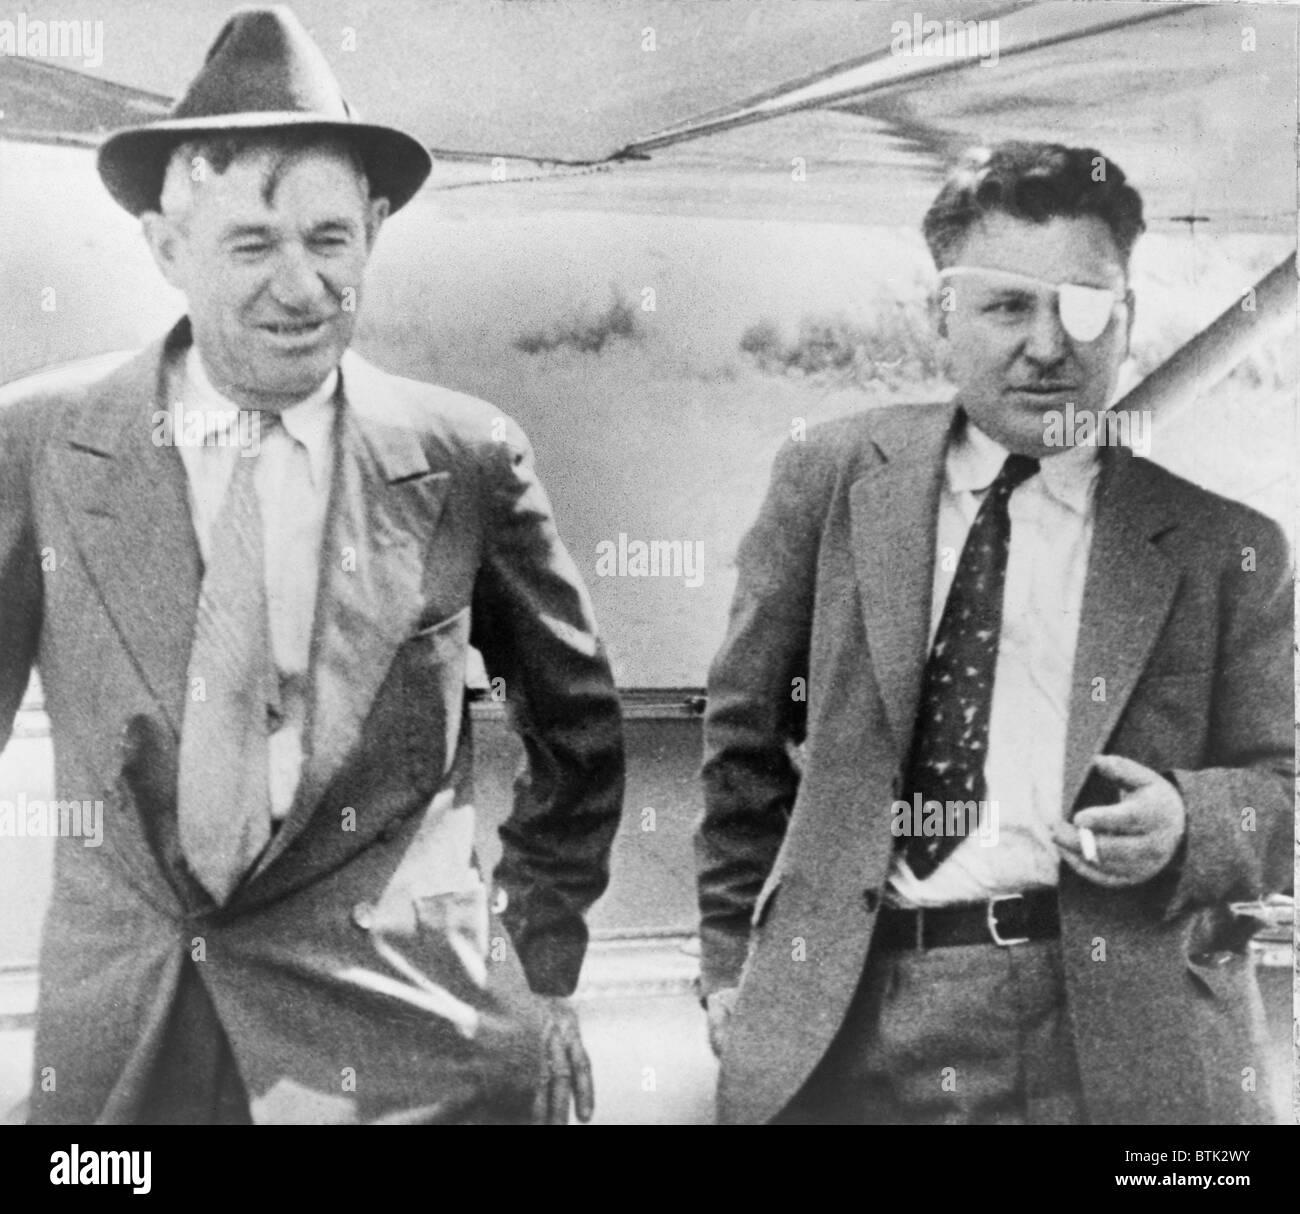 Pilot Wiley Post (1898-1935) With Actor Will Rogers (1879